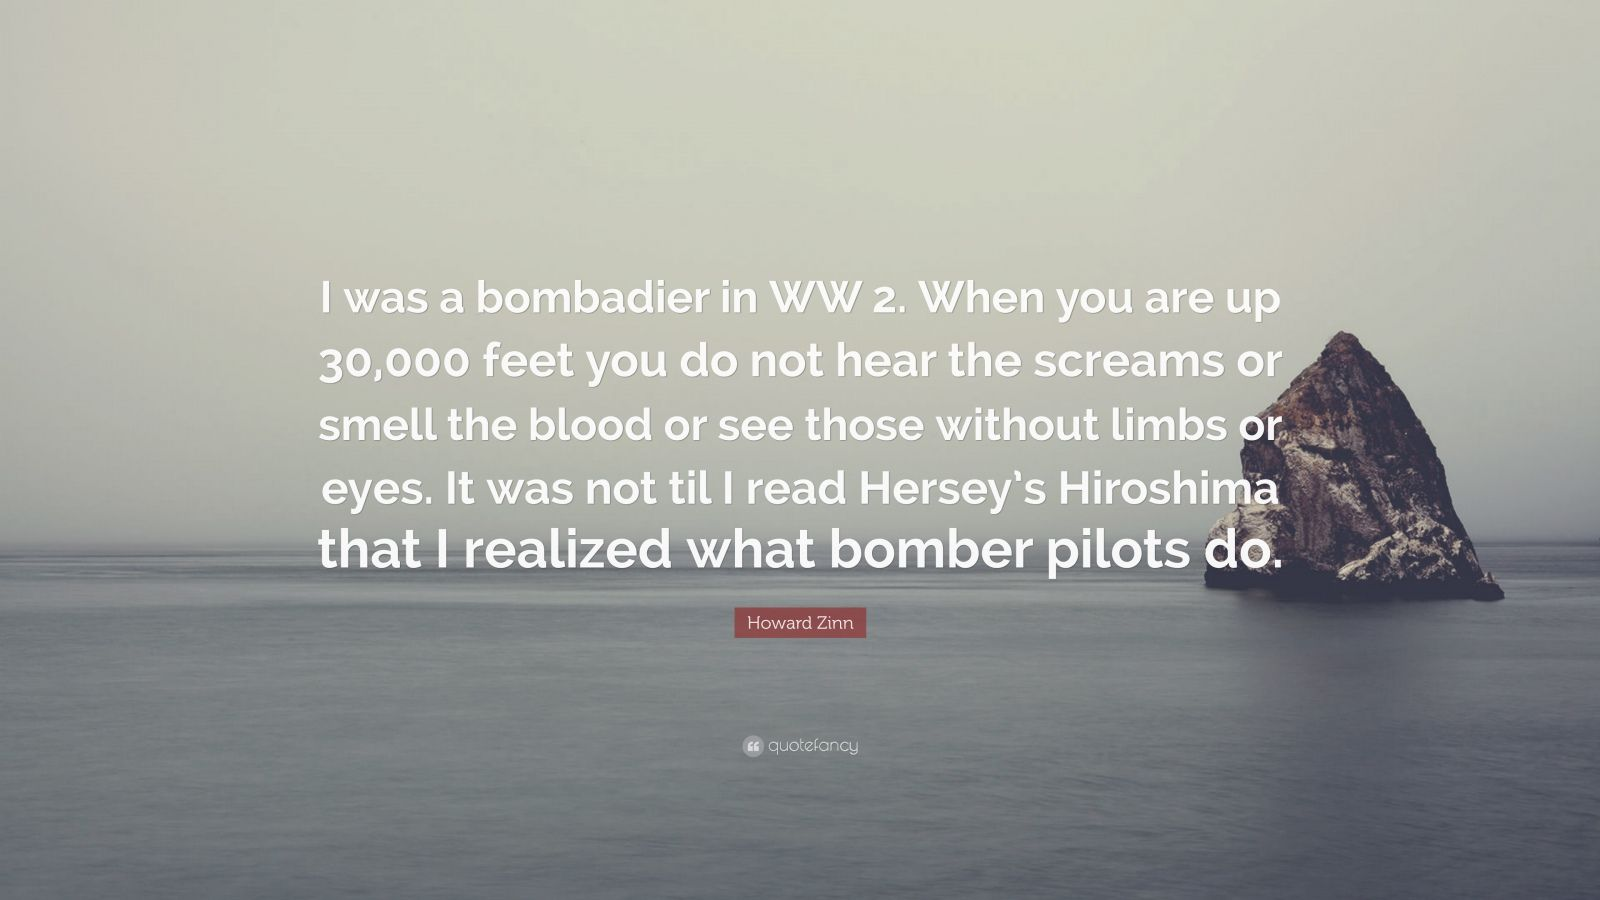 "Howard Zinn Quote: ""I was a bombadier in WW 2. When you are up 30,000 feet you do not hear the screams or smell the blood or see those without limbs or eyes. It was not til I read Hersey's Hiroshima that I realized what bomber pilots do."""